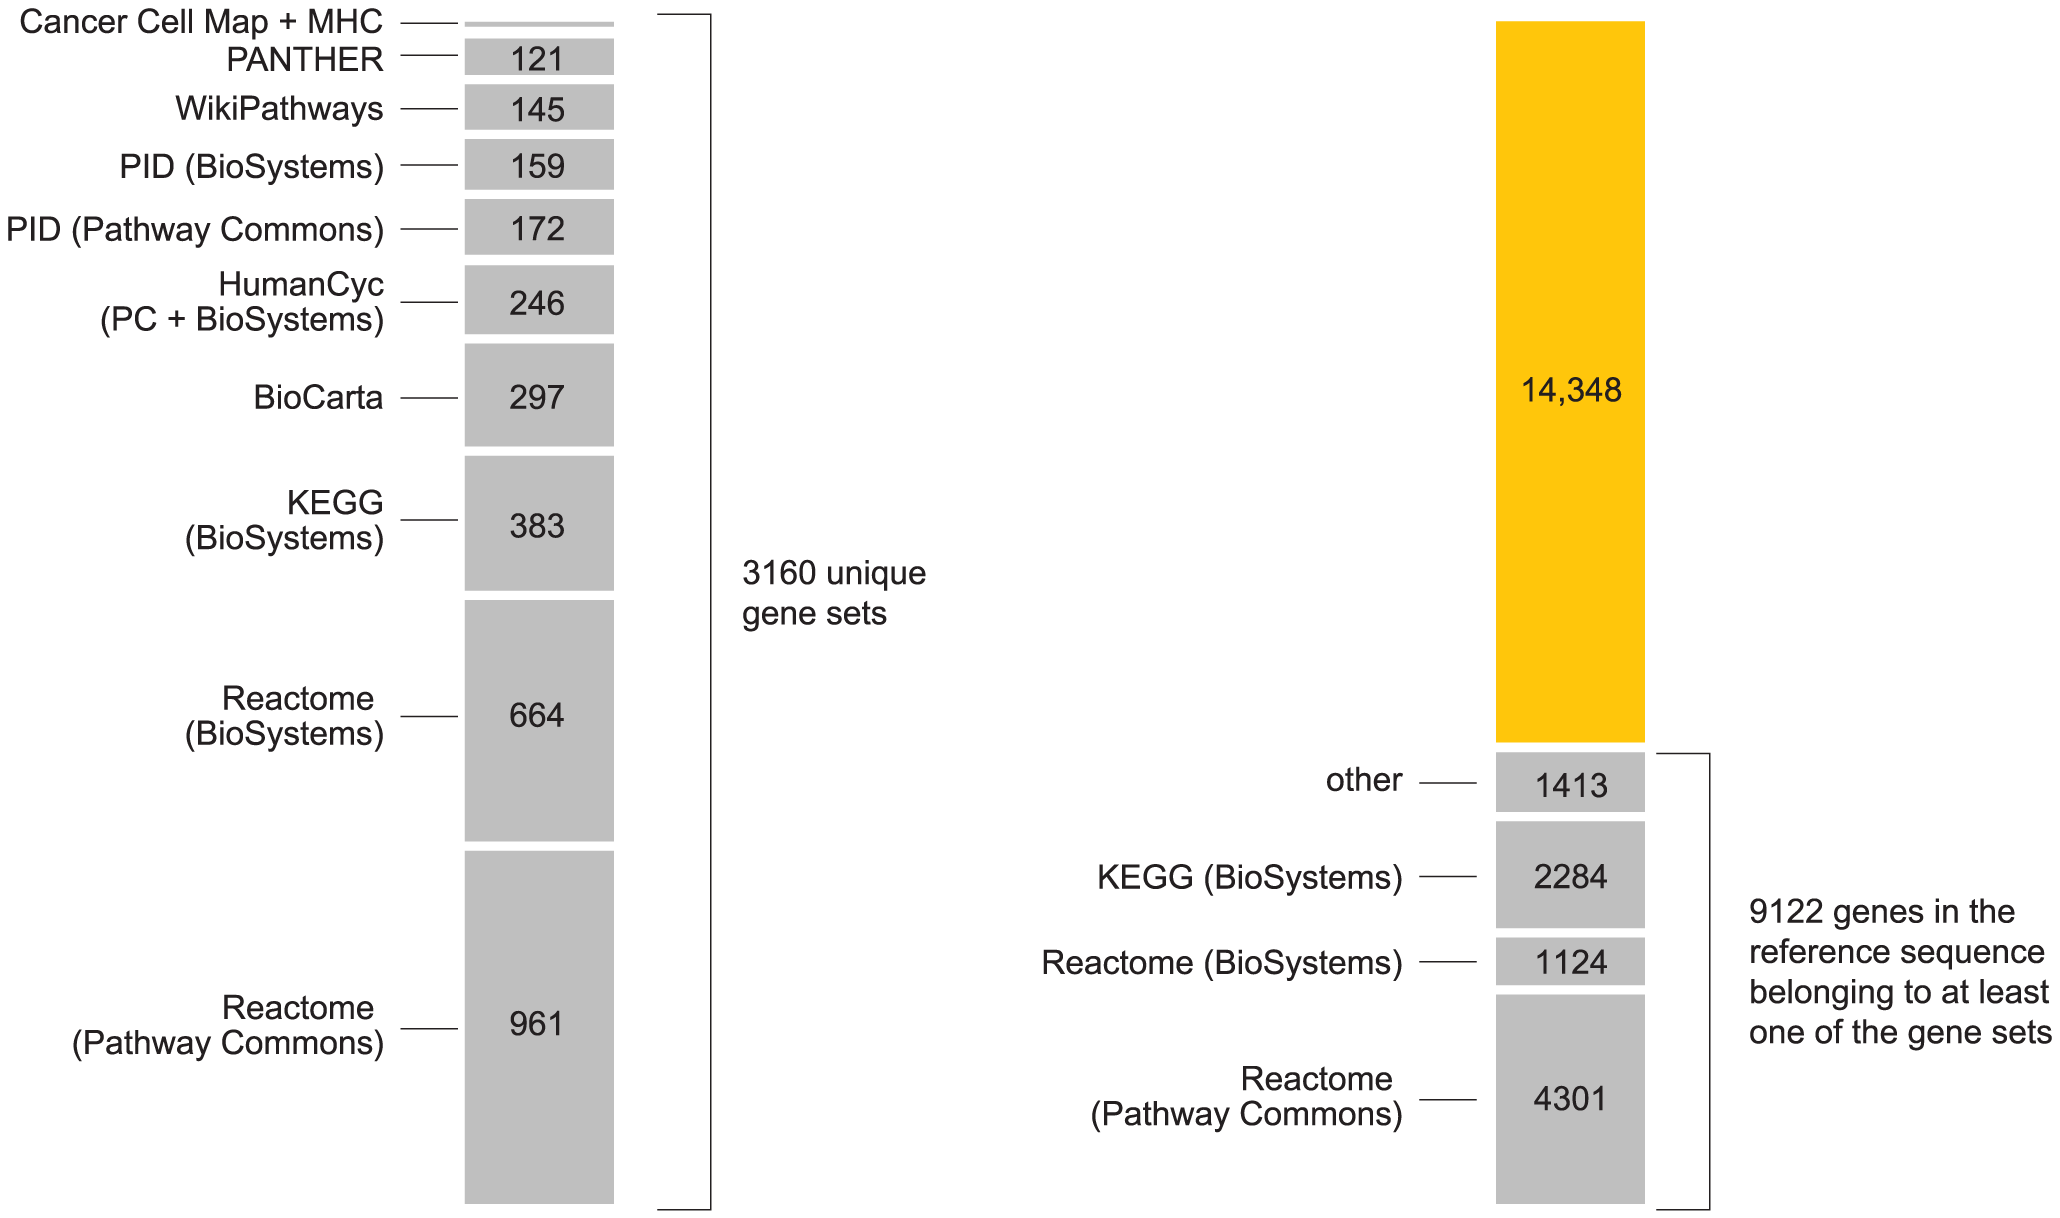 Summary of pathways used in the analysis.